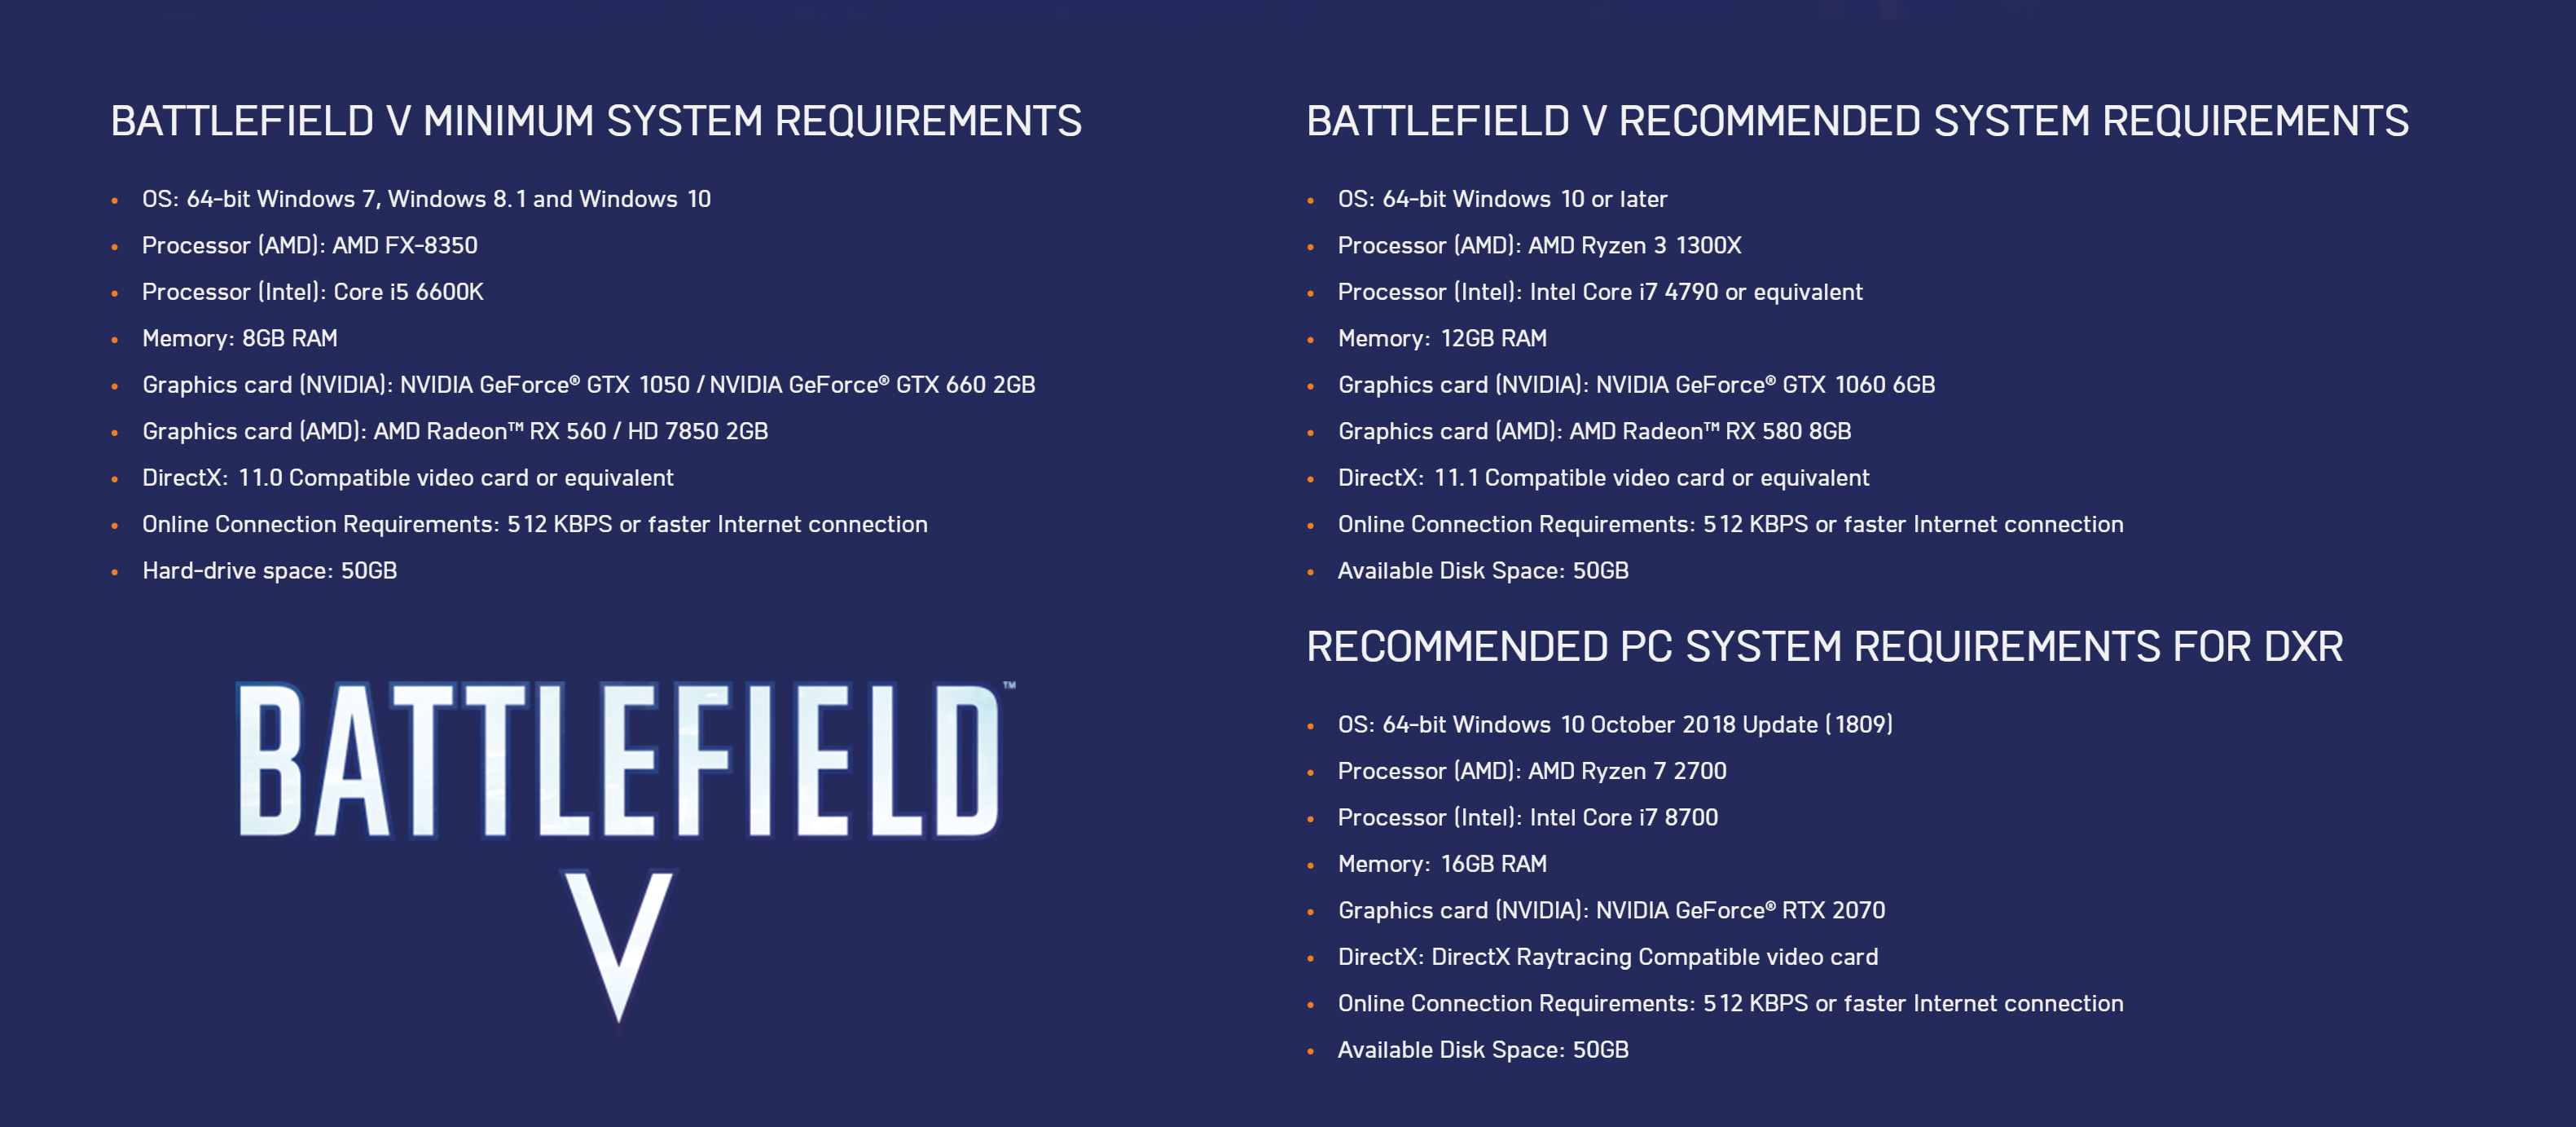 Battlefield 5 Pc Requirements Revealed By DICE - Daily